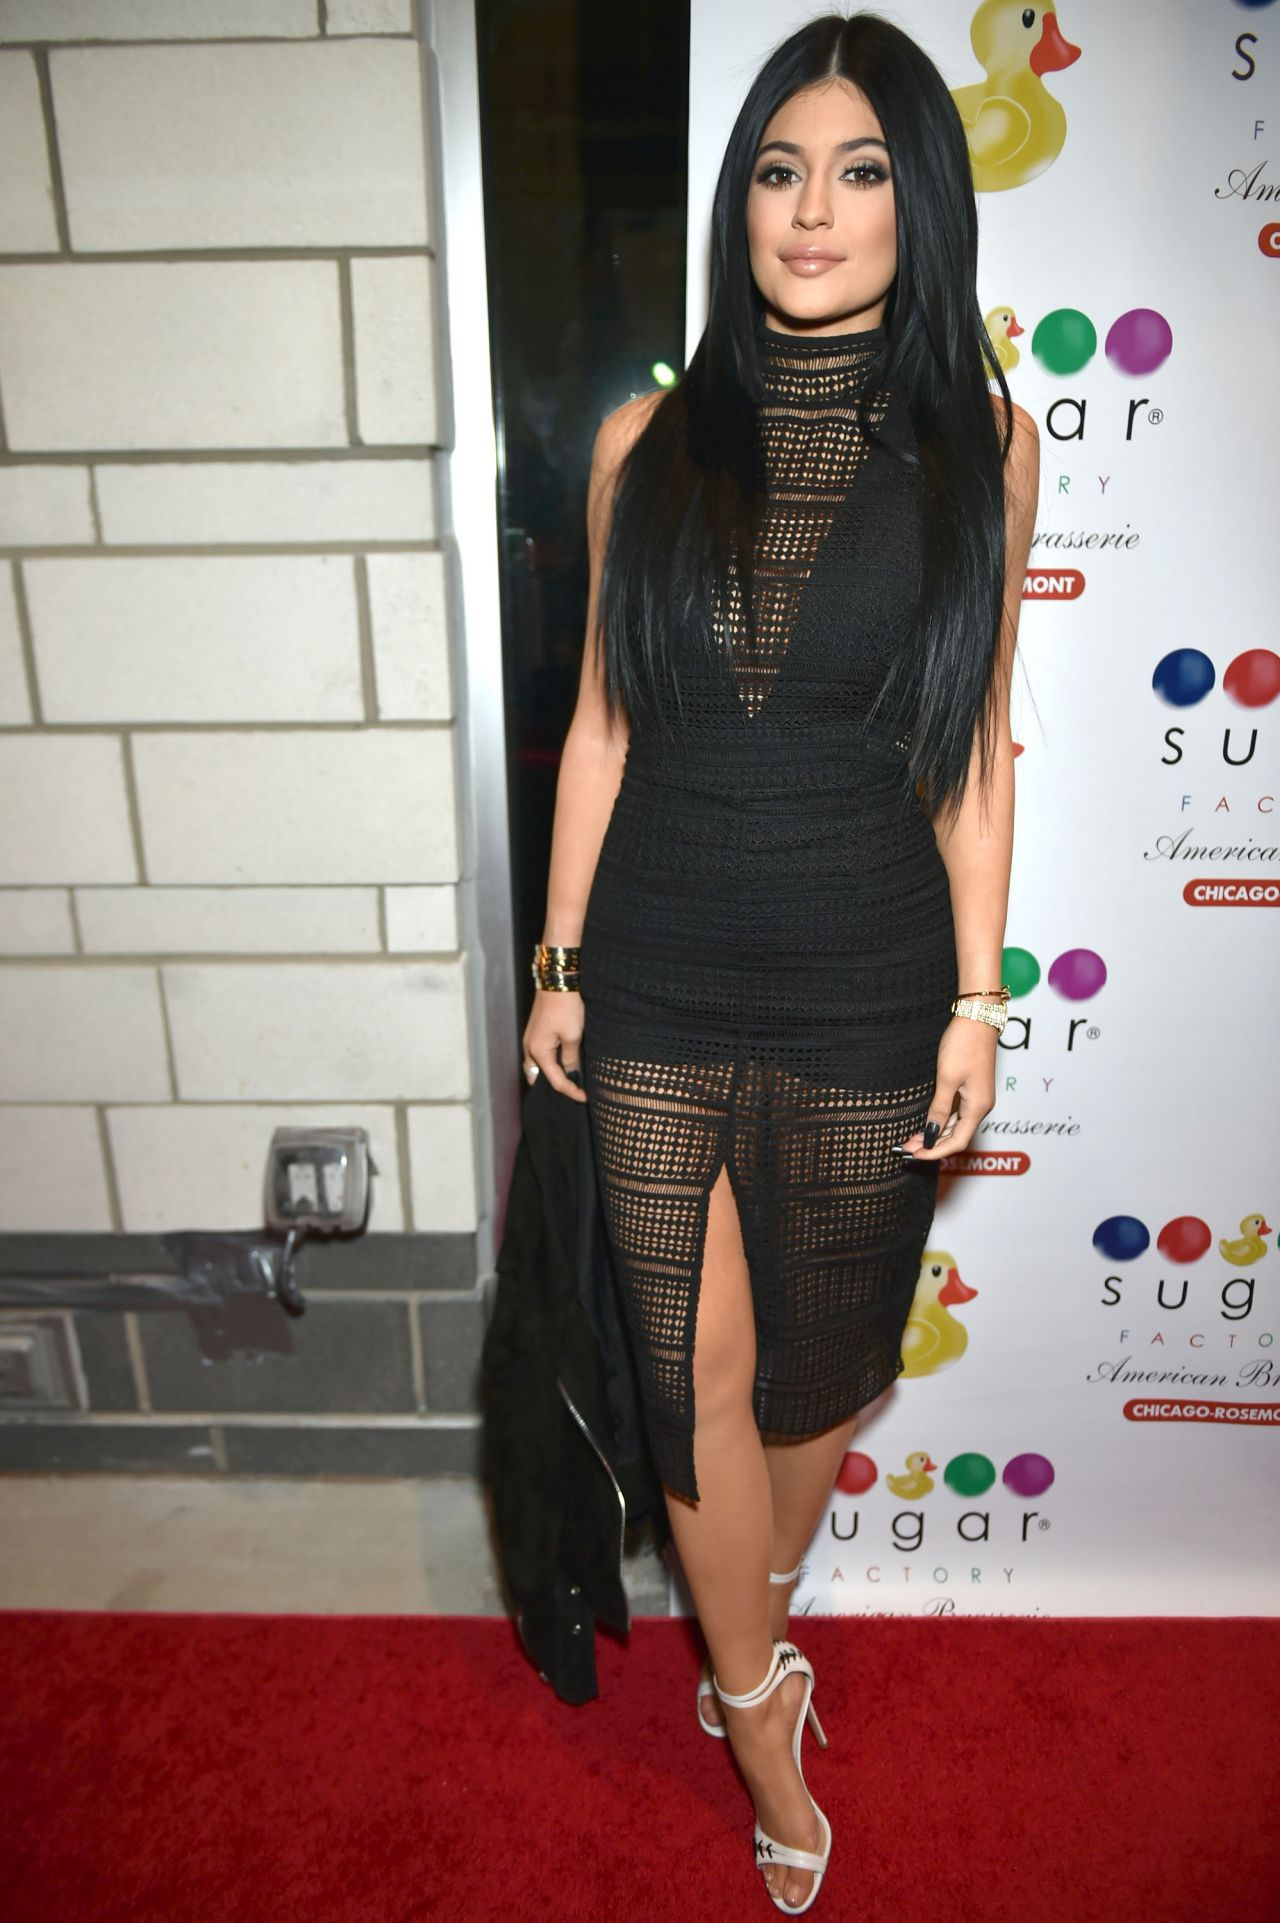 Kylie Jenner - Sugar Factory American Brasserie Grand Opening in Chicago